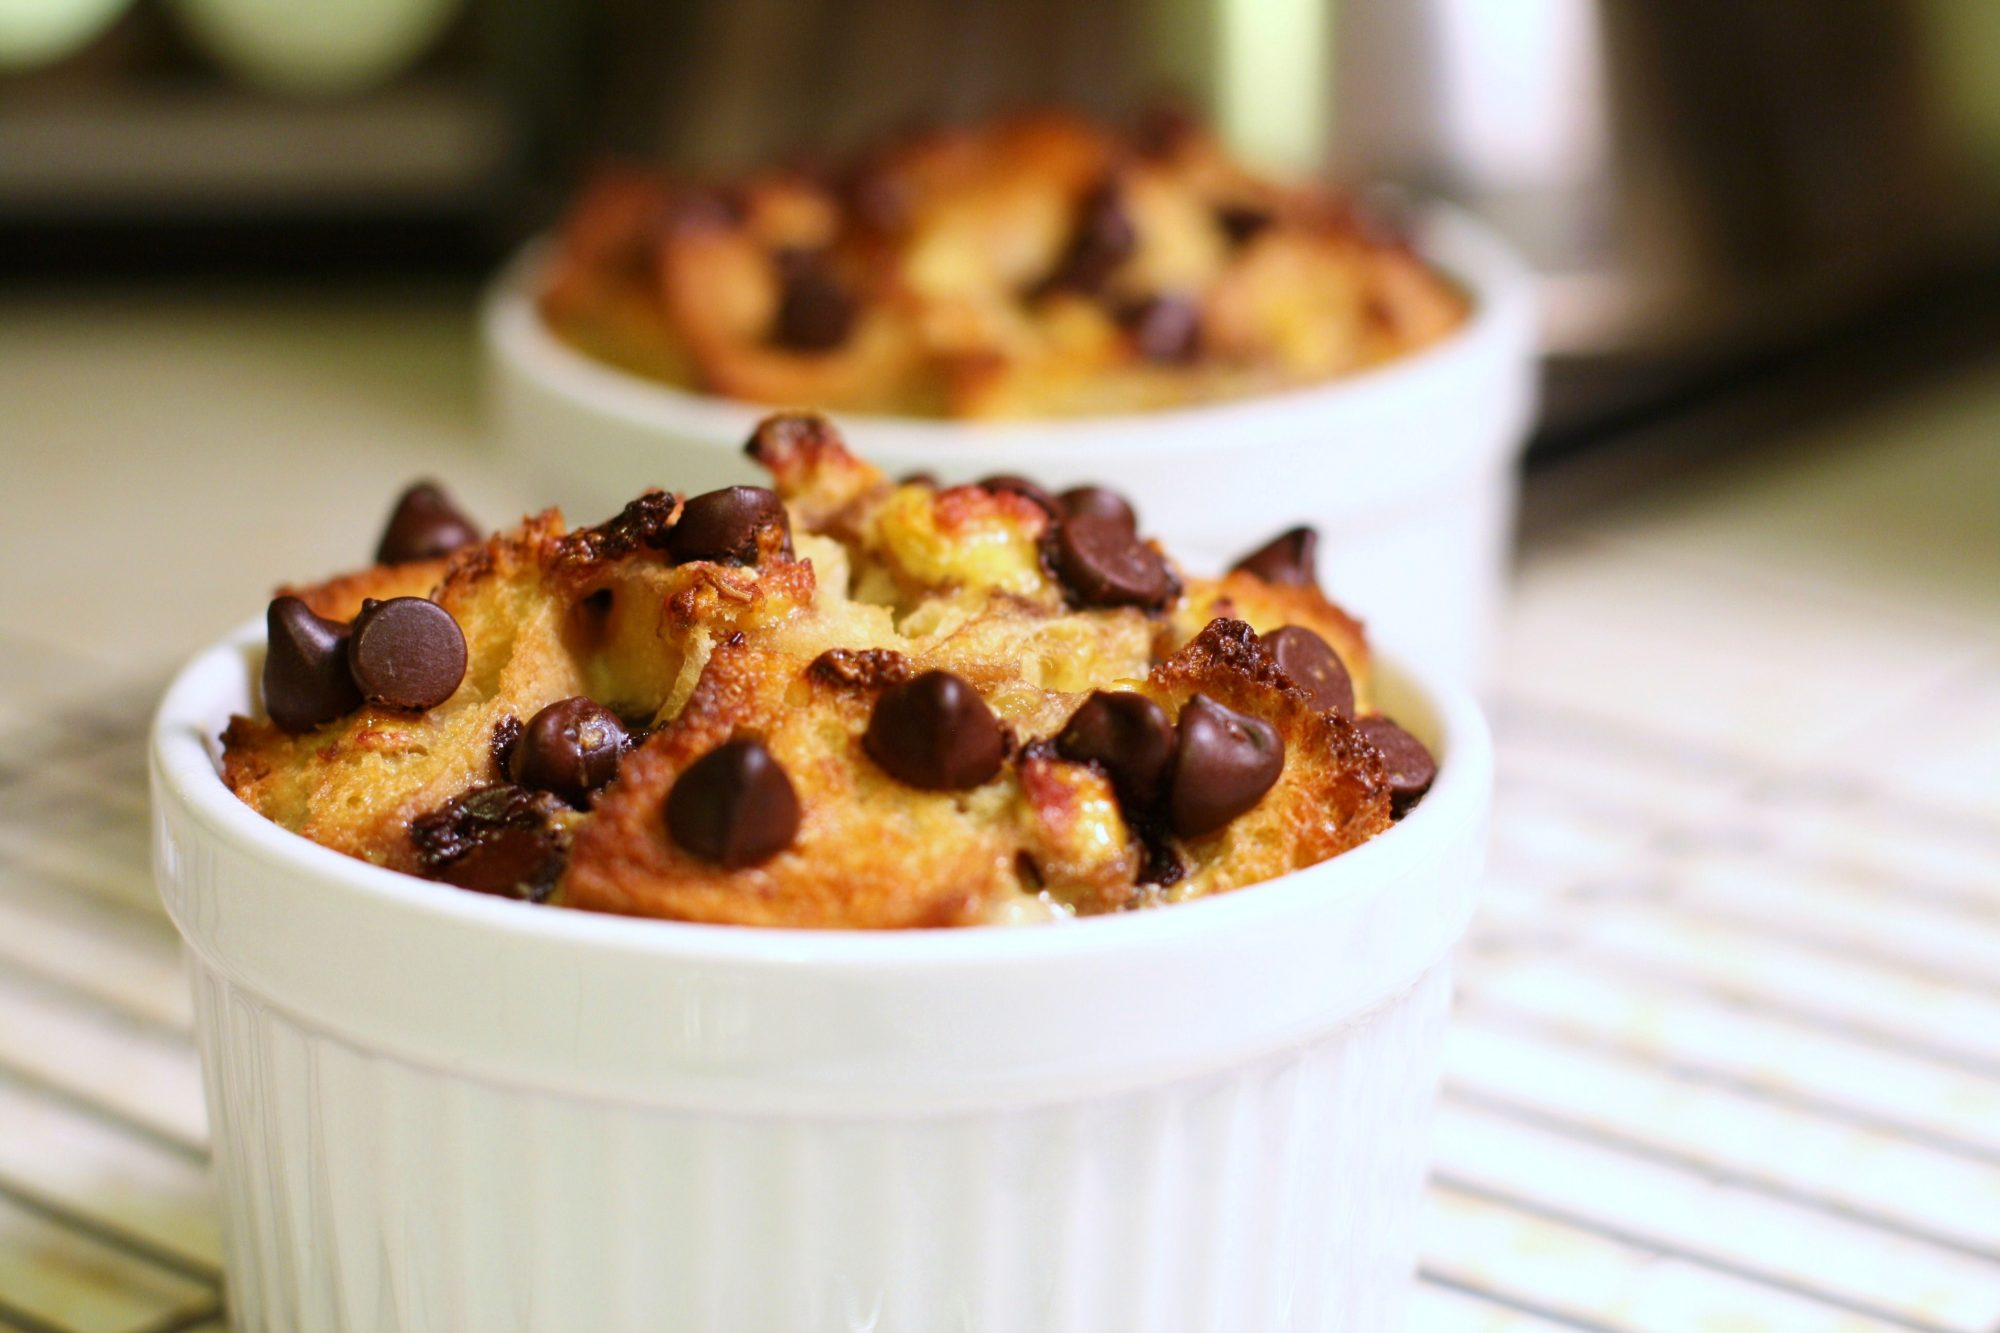 586646 Chocolate Banana Bread Pudding Photo by TTV78